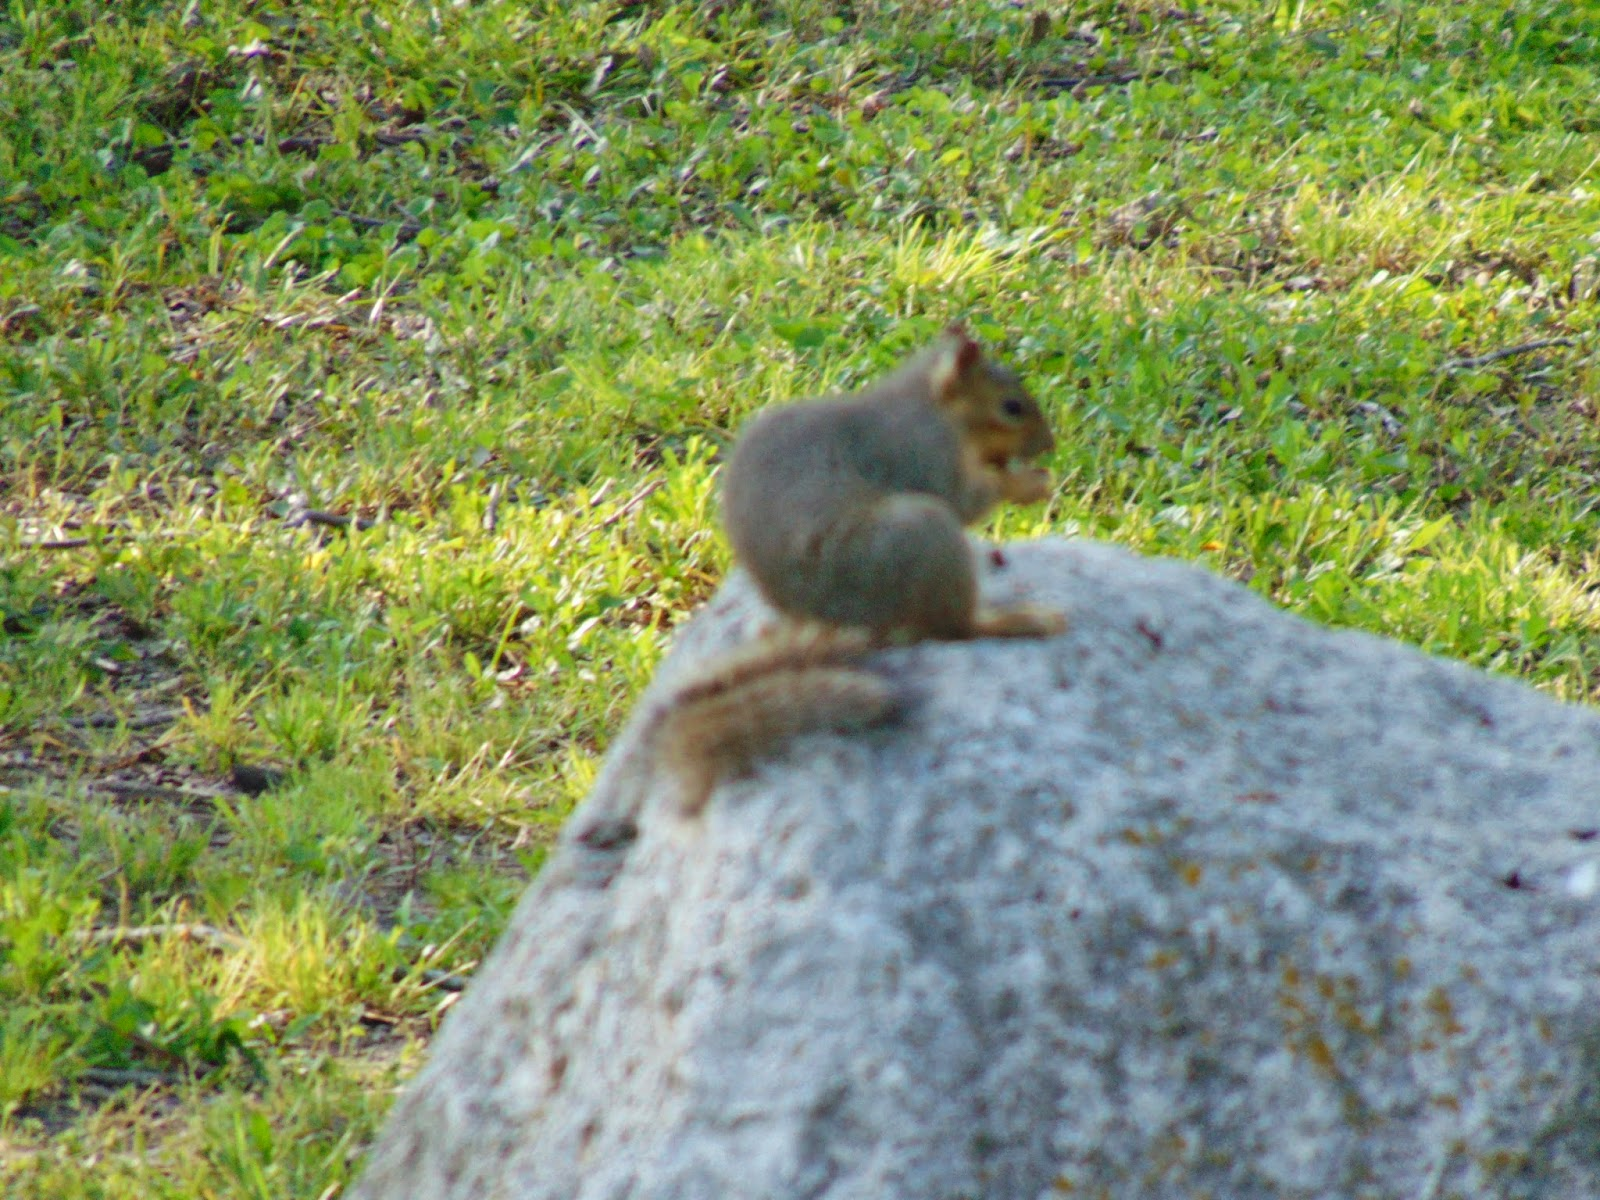 Squirrel sits on a rock with acorn